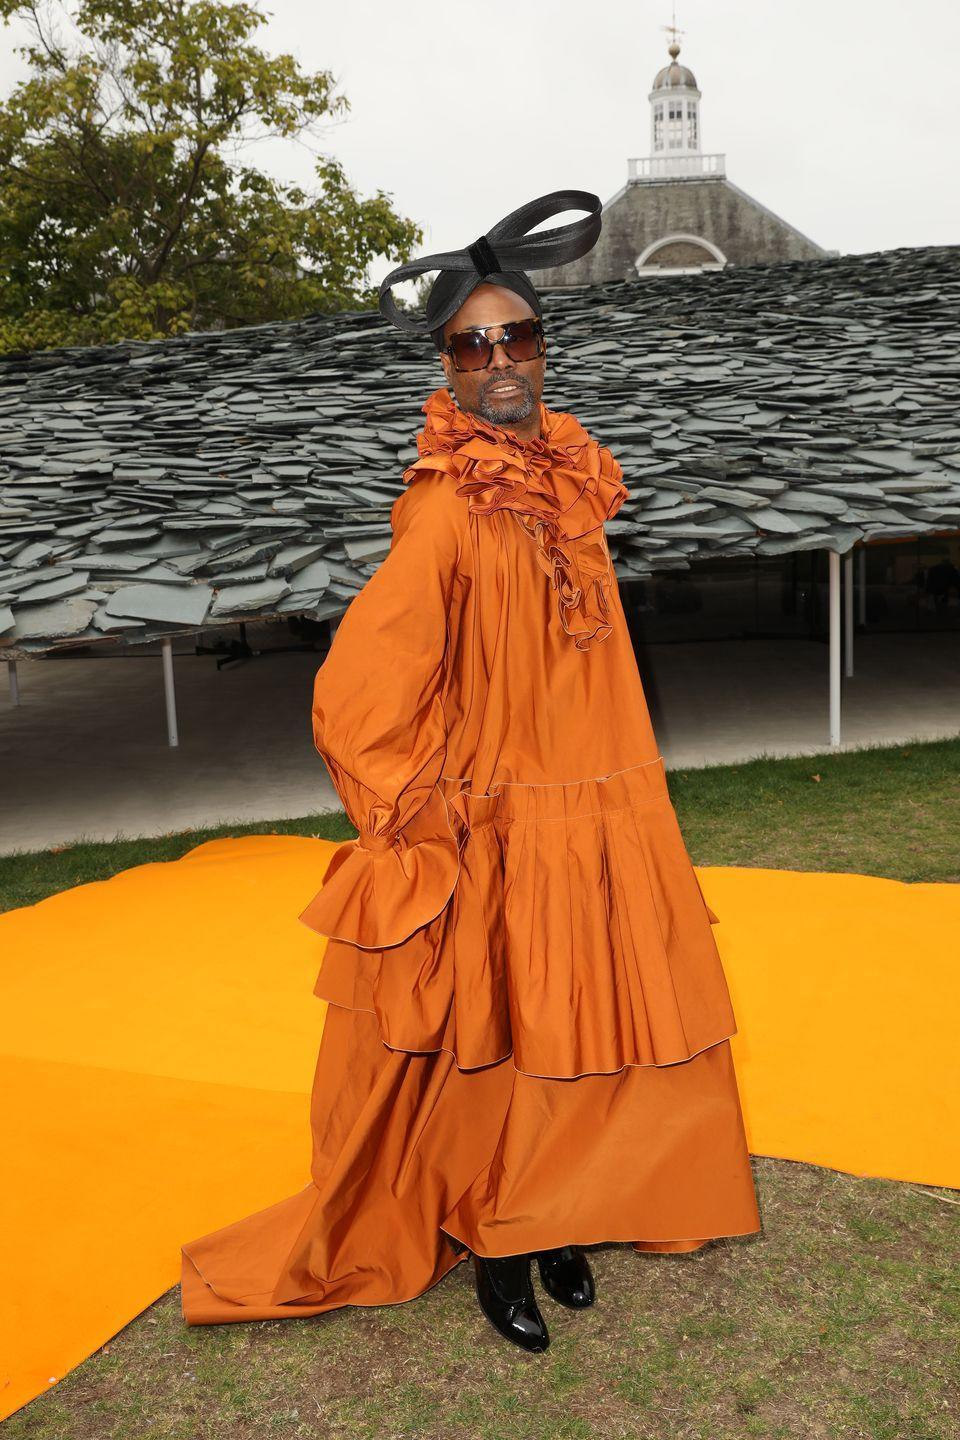 """<p>Porter's many looks dominated <a href=""""https://www.elle.com/uk/fashion/celebrity-style/a29053514/billy-porter-london-fashion-week/"""" rel=""""nofollow noopener"""" target=""""_blank"""" data-ylk=""""slk:London Fashion Week"""" class=""""link rapid-noclick-resp"""">London Fashion Week</a>, during which he made 15 outfit changes in under 72 hours, and had 20 looks in total over the four days. </p><p>To sit FROW at the Roksanda SS20 show, the actor wore a voluminous orange-coloured gown by Roksanda with black boots. He teamed the look with a black bow hat by Sarah Sokol and black shades by The Smith Society. </p><p>Porter later took to <a href=""""https://www.instagram.com/p/B2kWmhoFjdo/"""" rel=""""nofollow noopener"""" target=""""_blank"""" data-ylk=""""slk:Instagram"""" class=""""link rapid-noclick-resp"""">Instagram</a> to say that he 'immediately started crying' when the runway show began as it was 'simply beautiful'. </p>"""